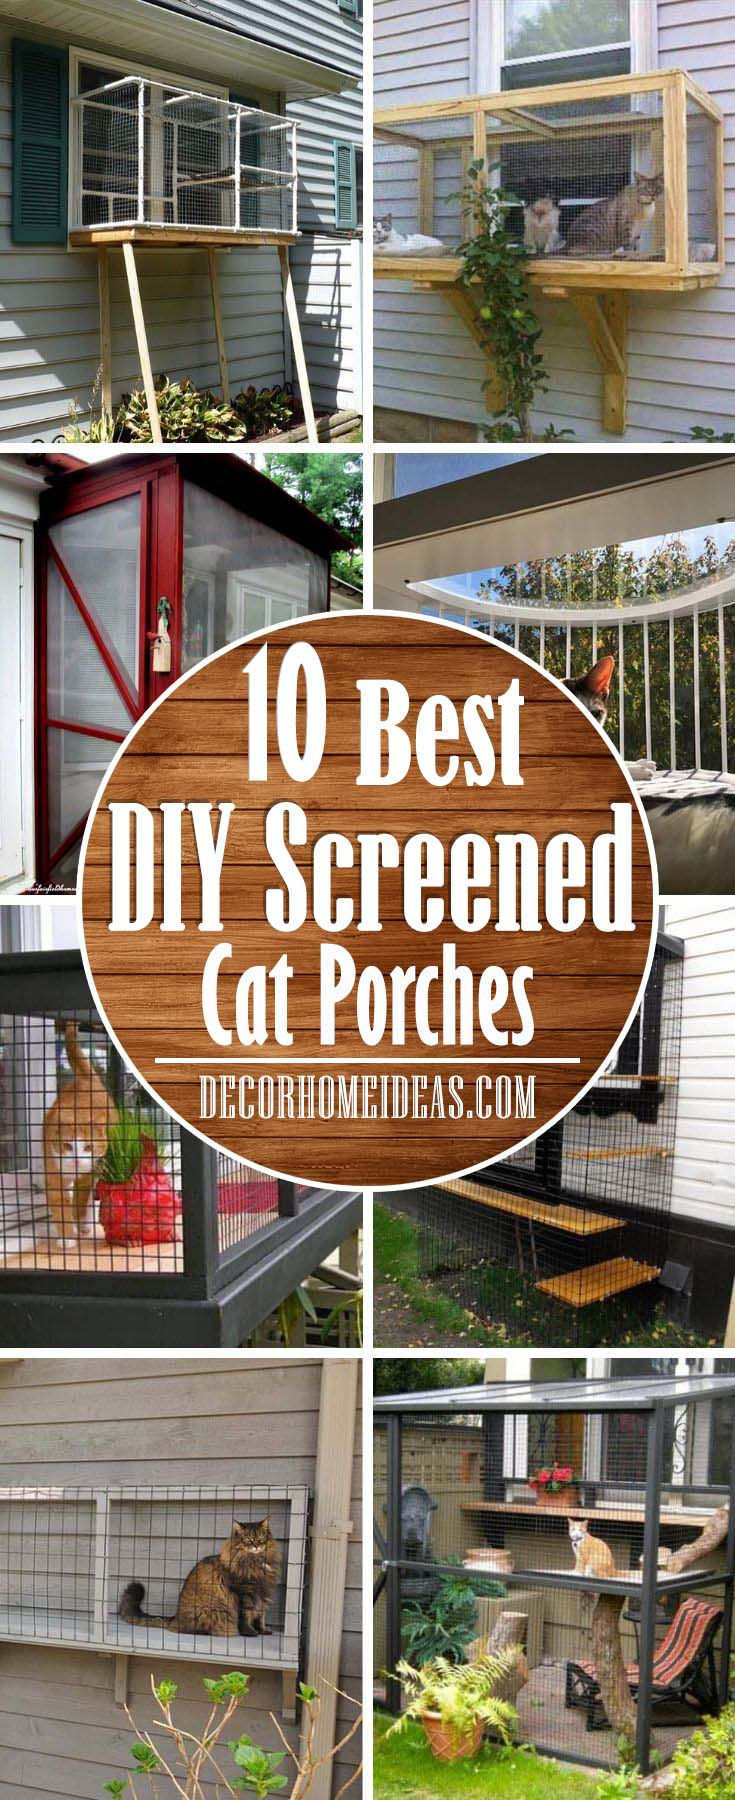 Best Diy Screened Cat Porches To Keep Your Kitty Safe Decor Home Ideas